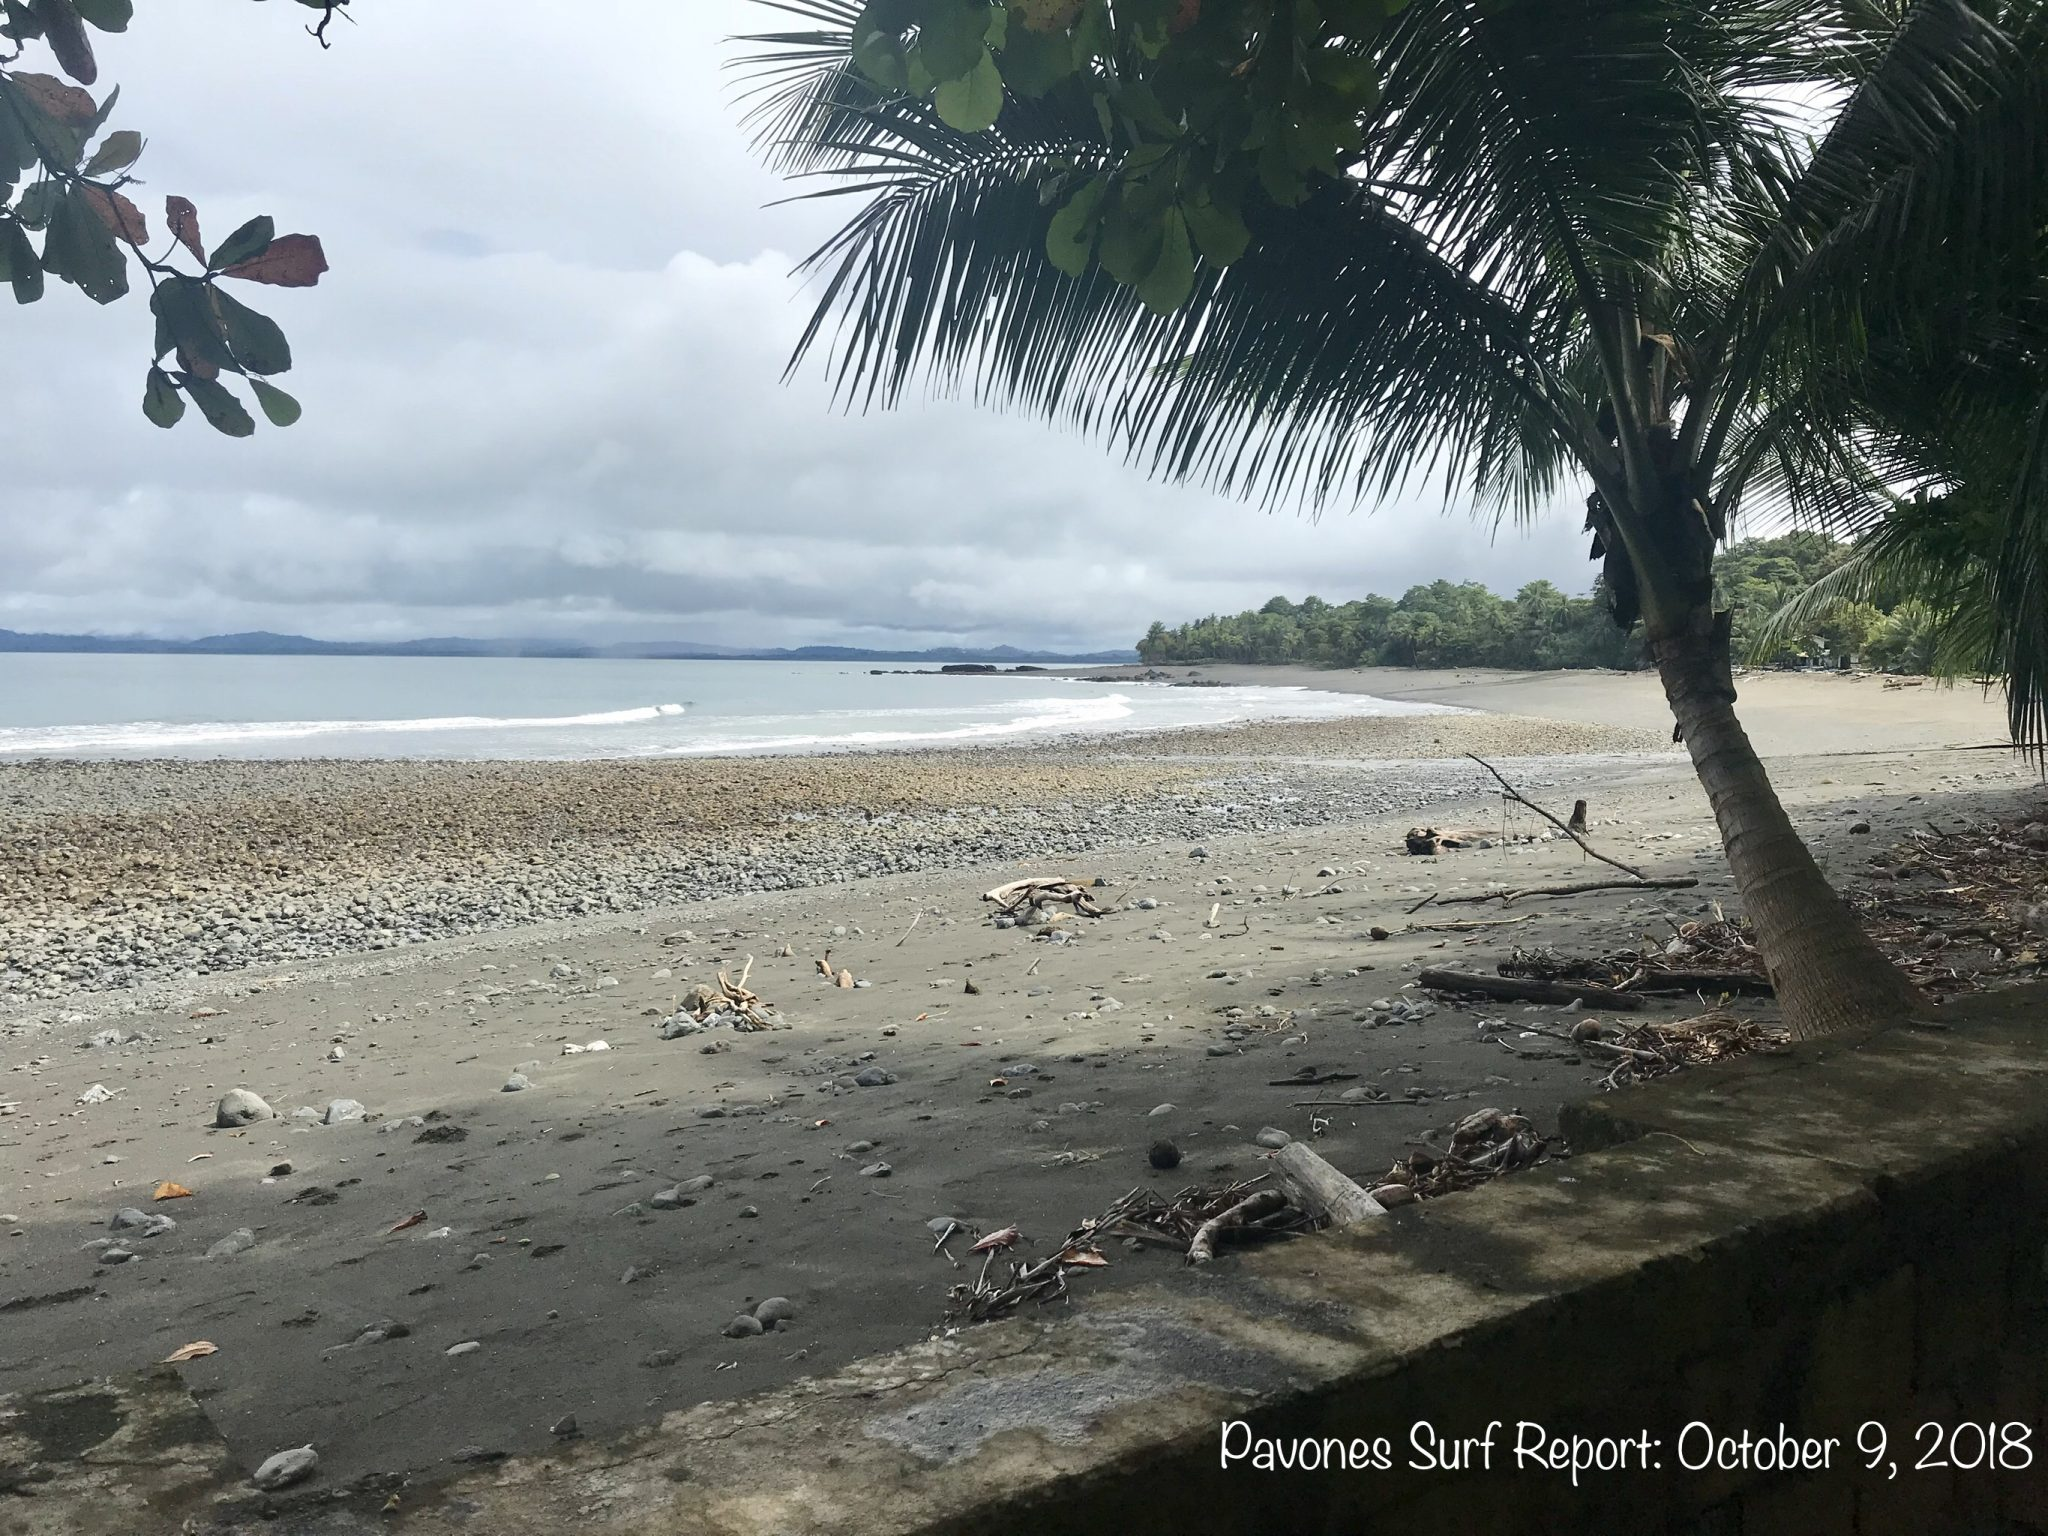 Pavones Costa Rica Surf Report Photo